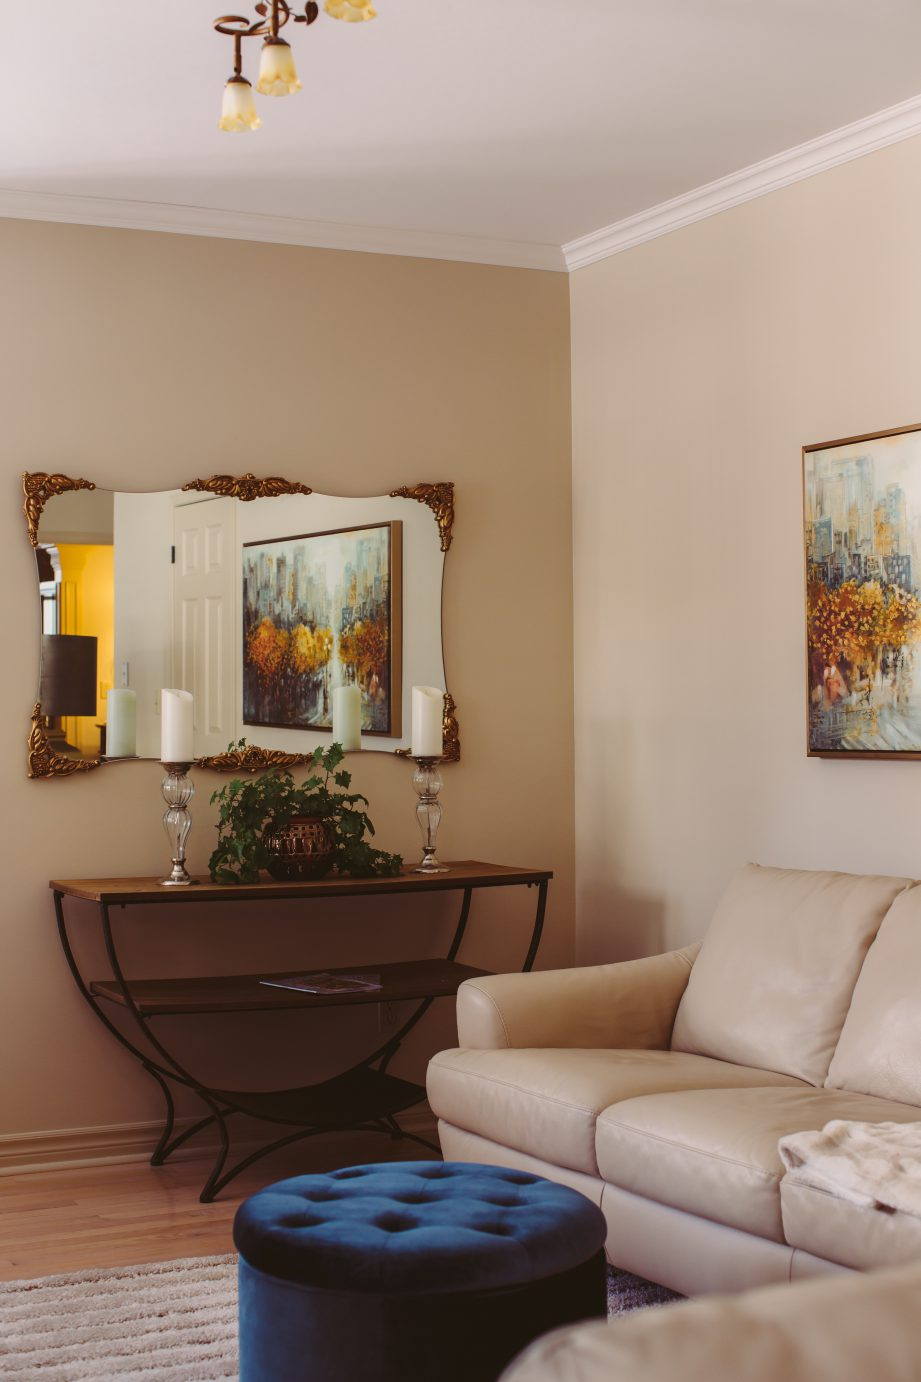 Furniture in the living room at